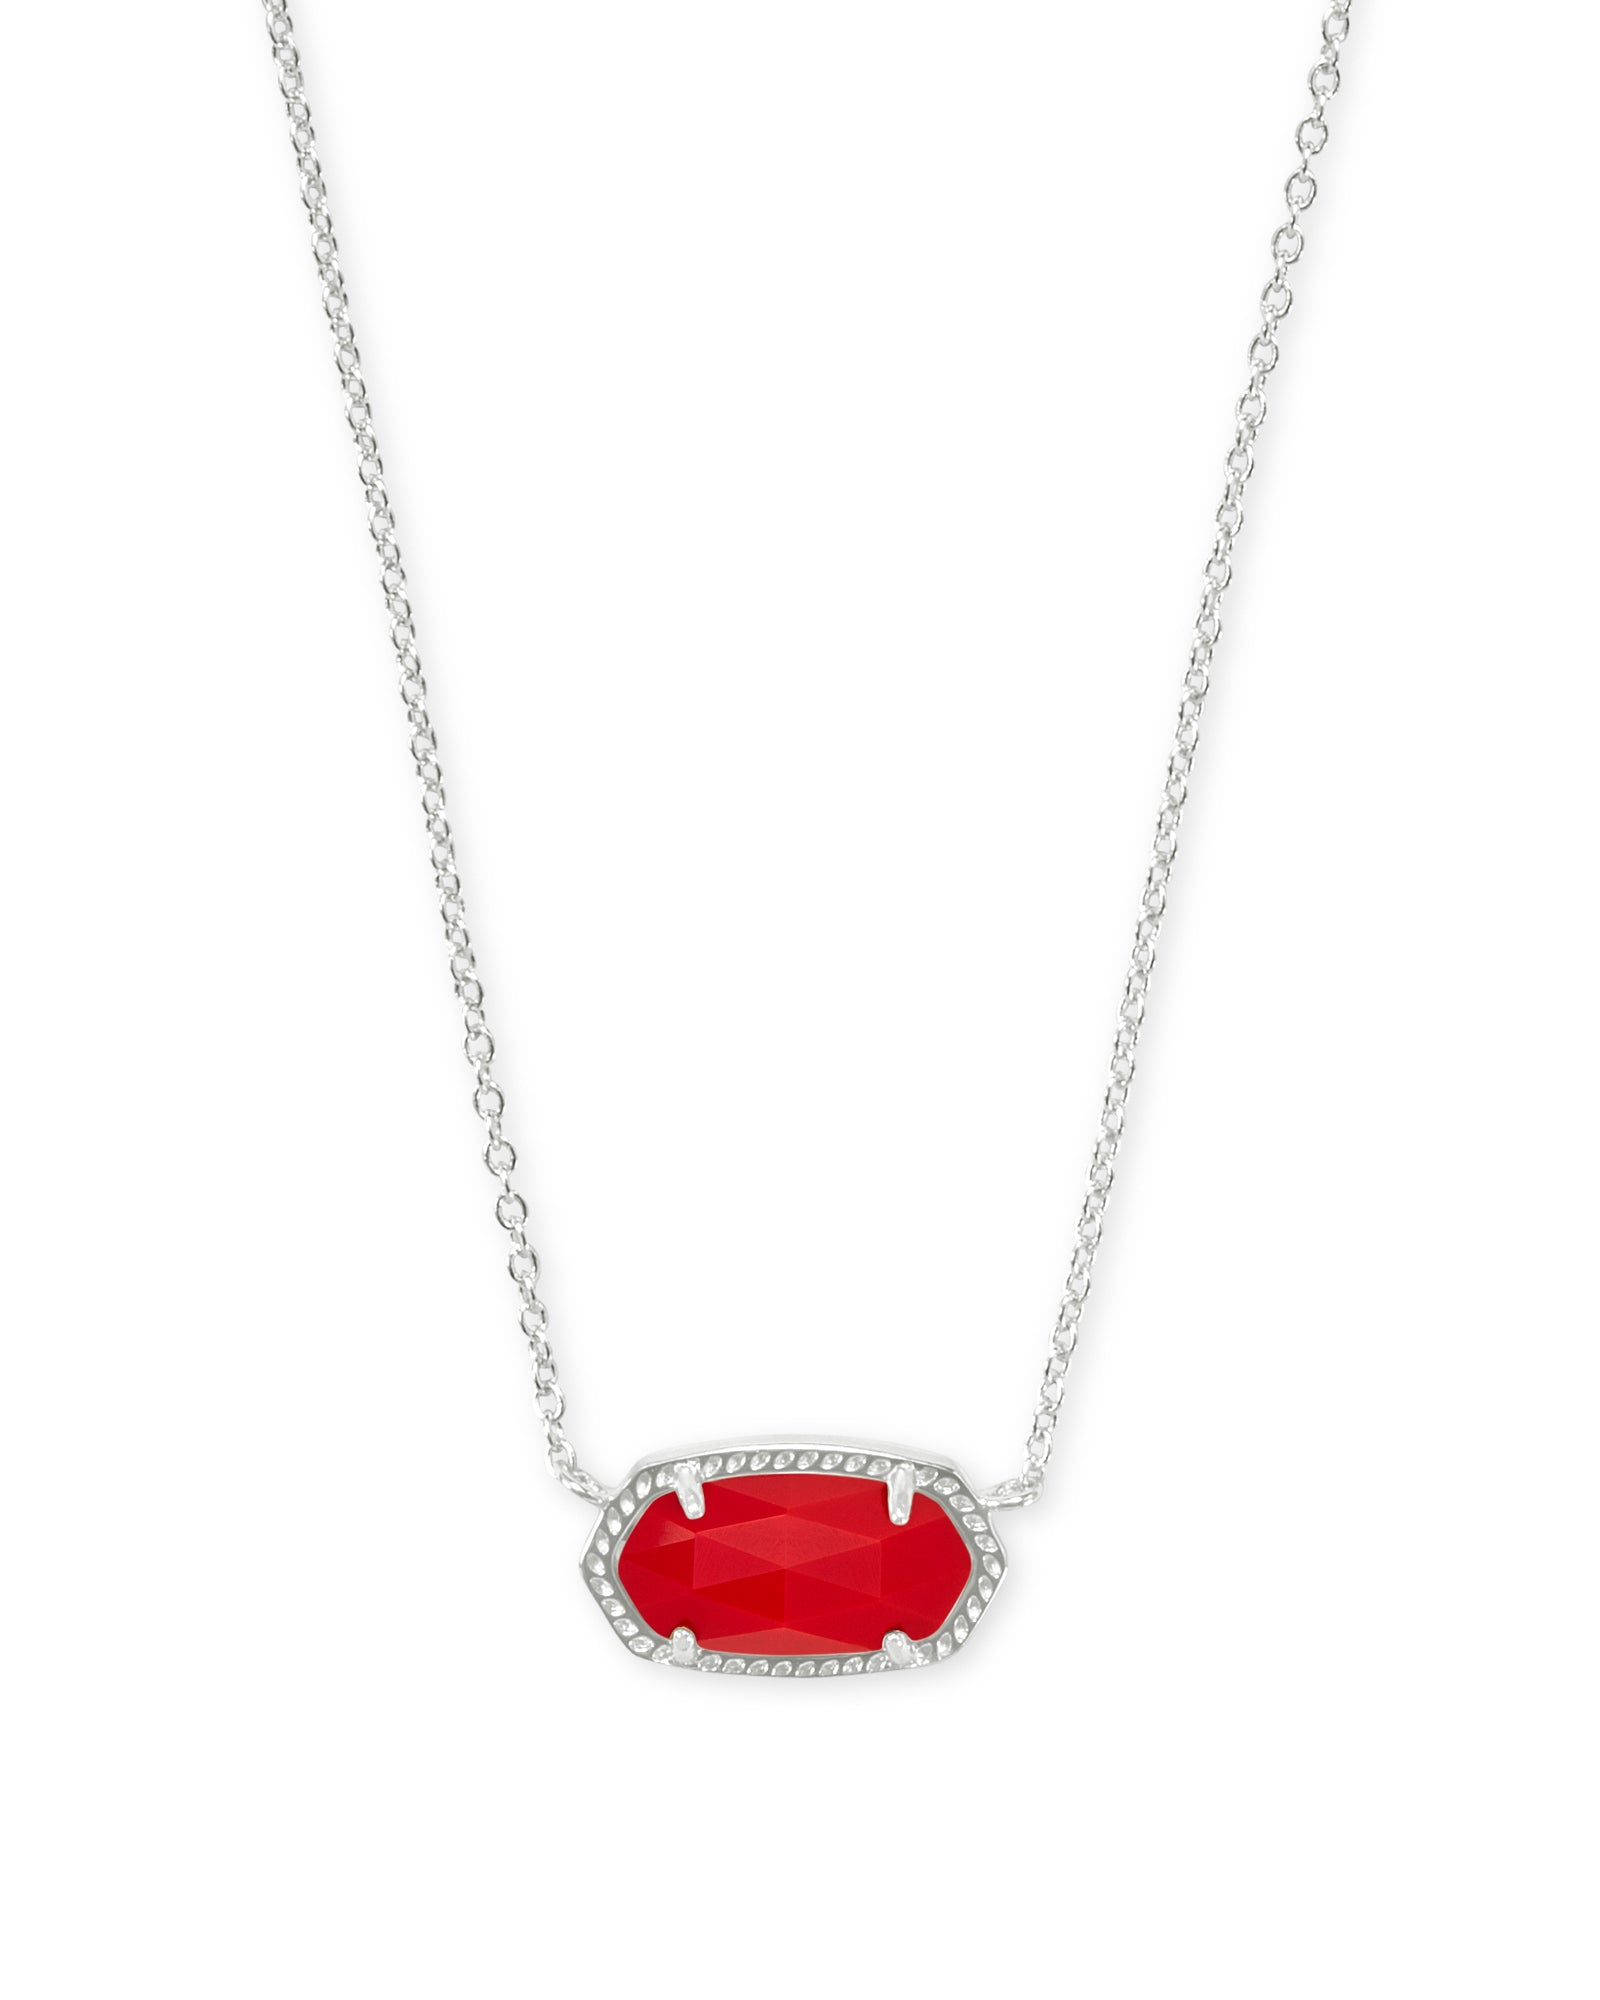 ELISA NECKLACE RHOD BRIGHT RED